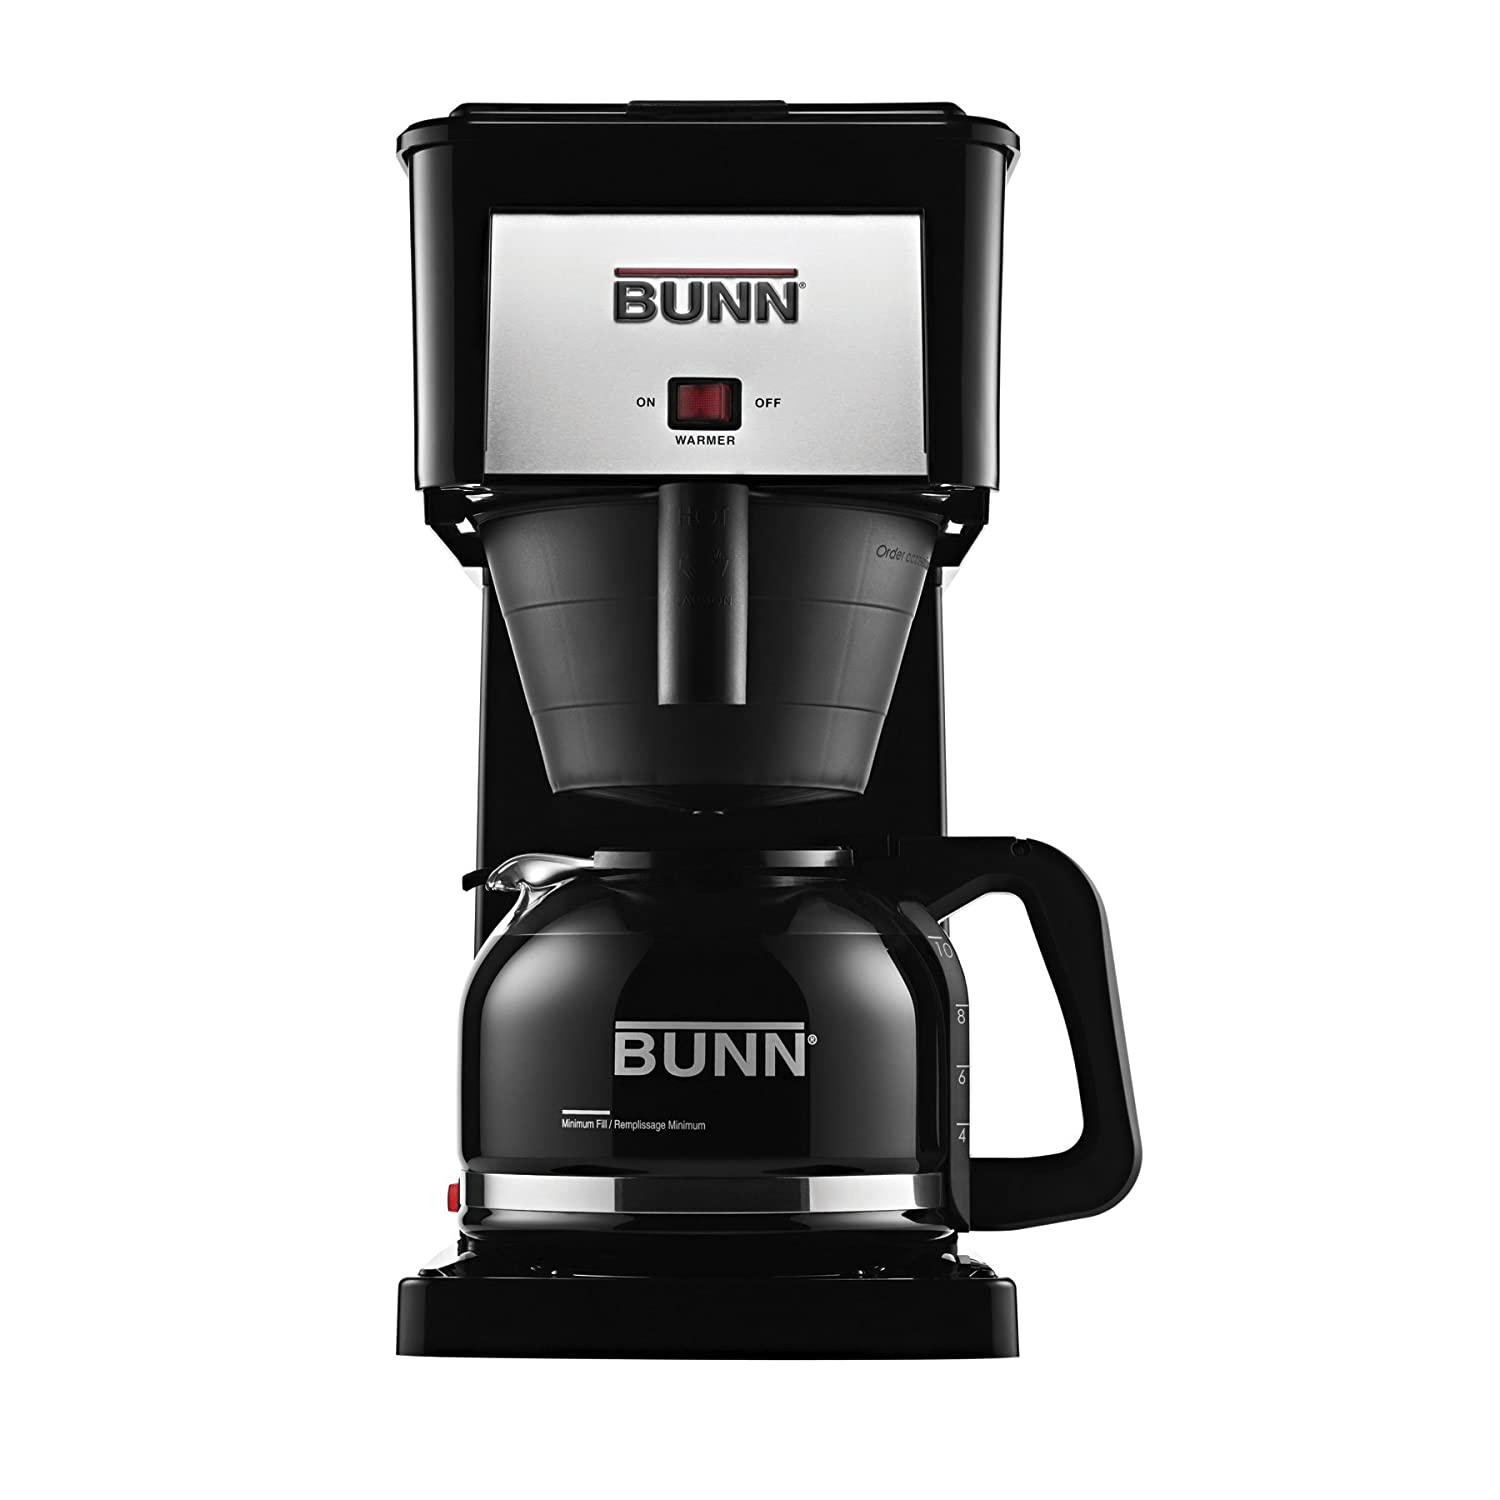 BUNN GRB Velocity Home Coffee Brewer Review